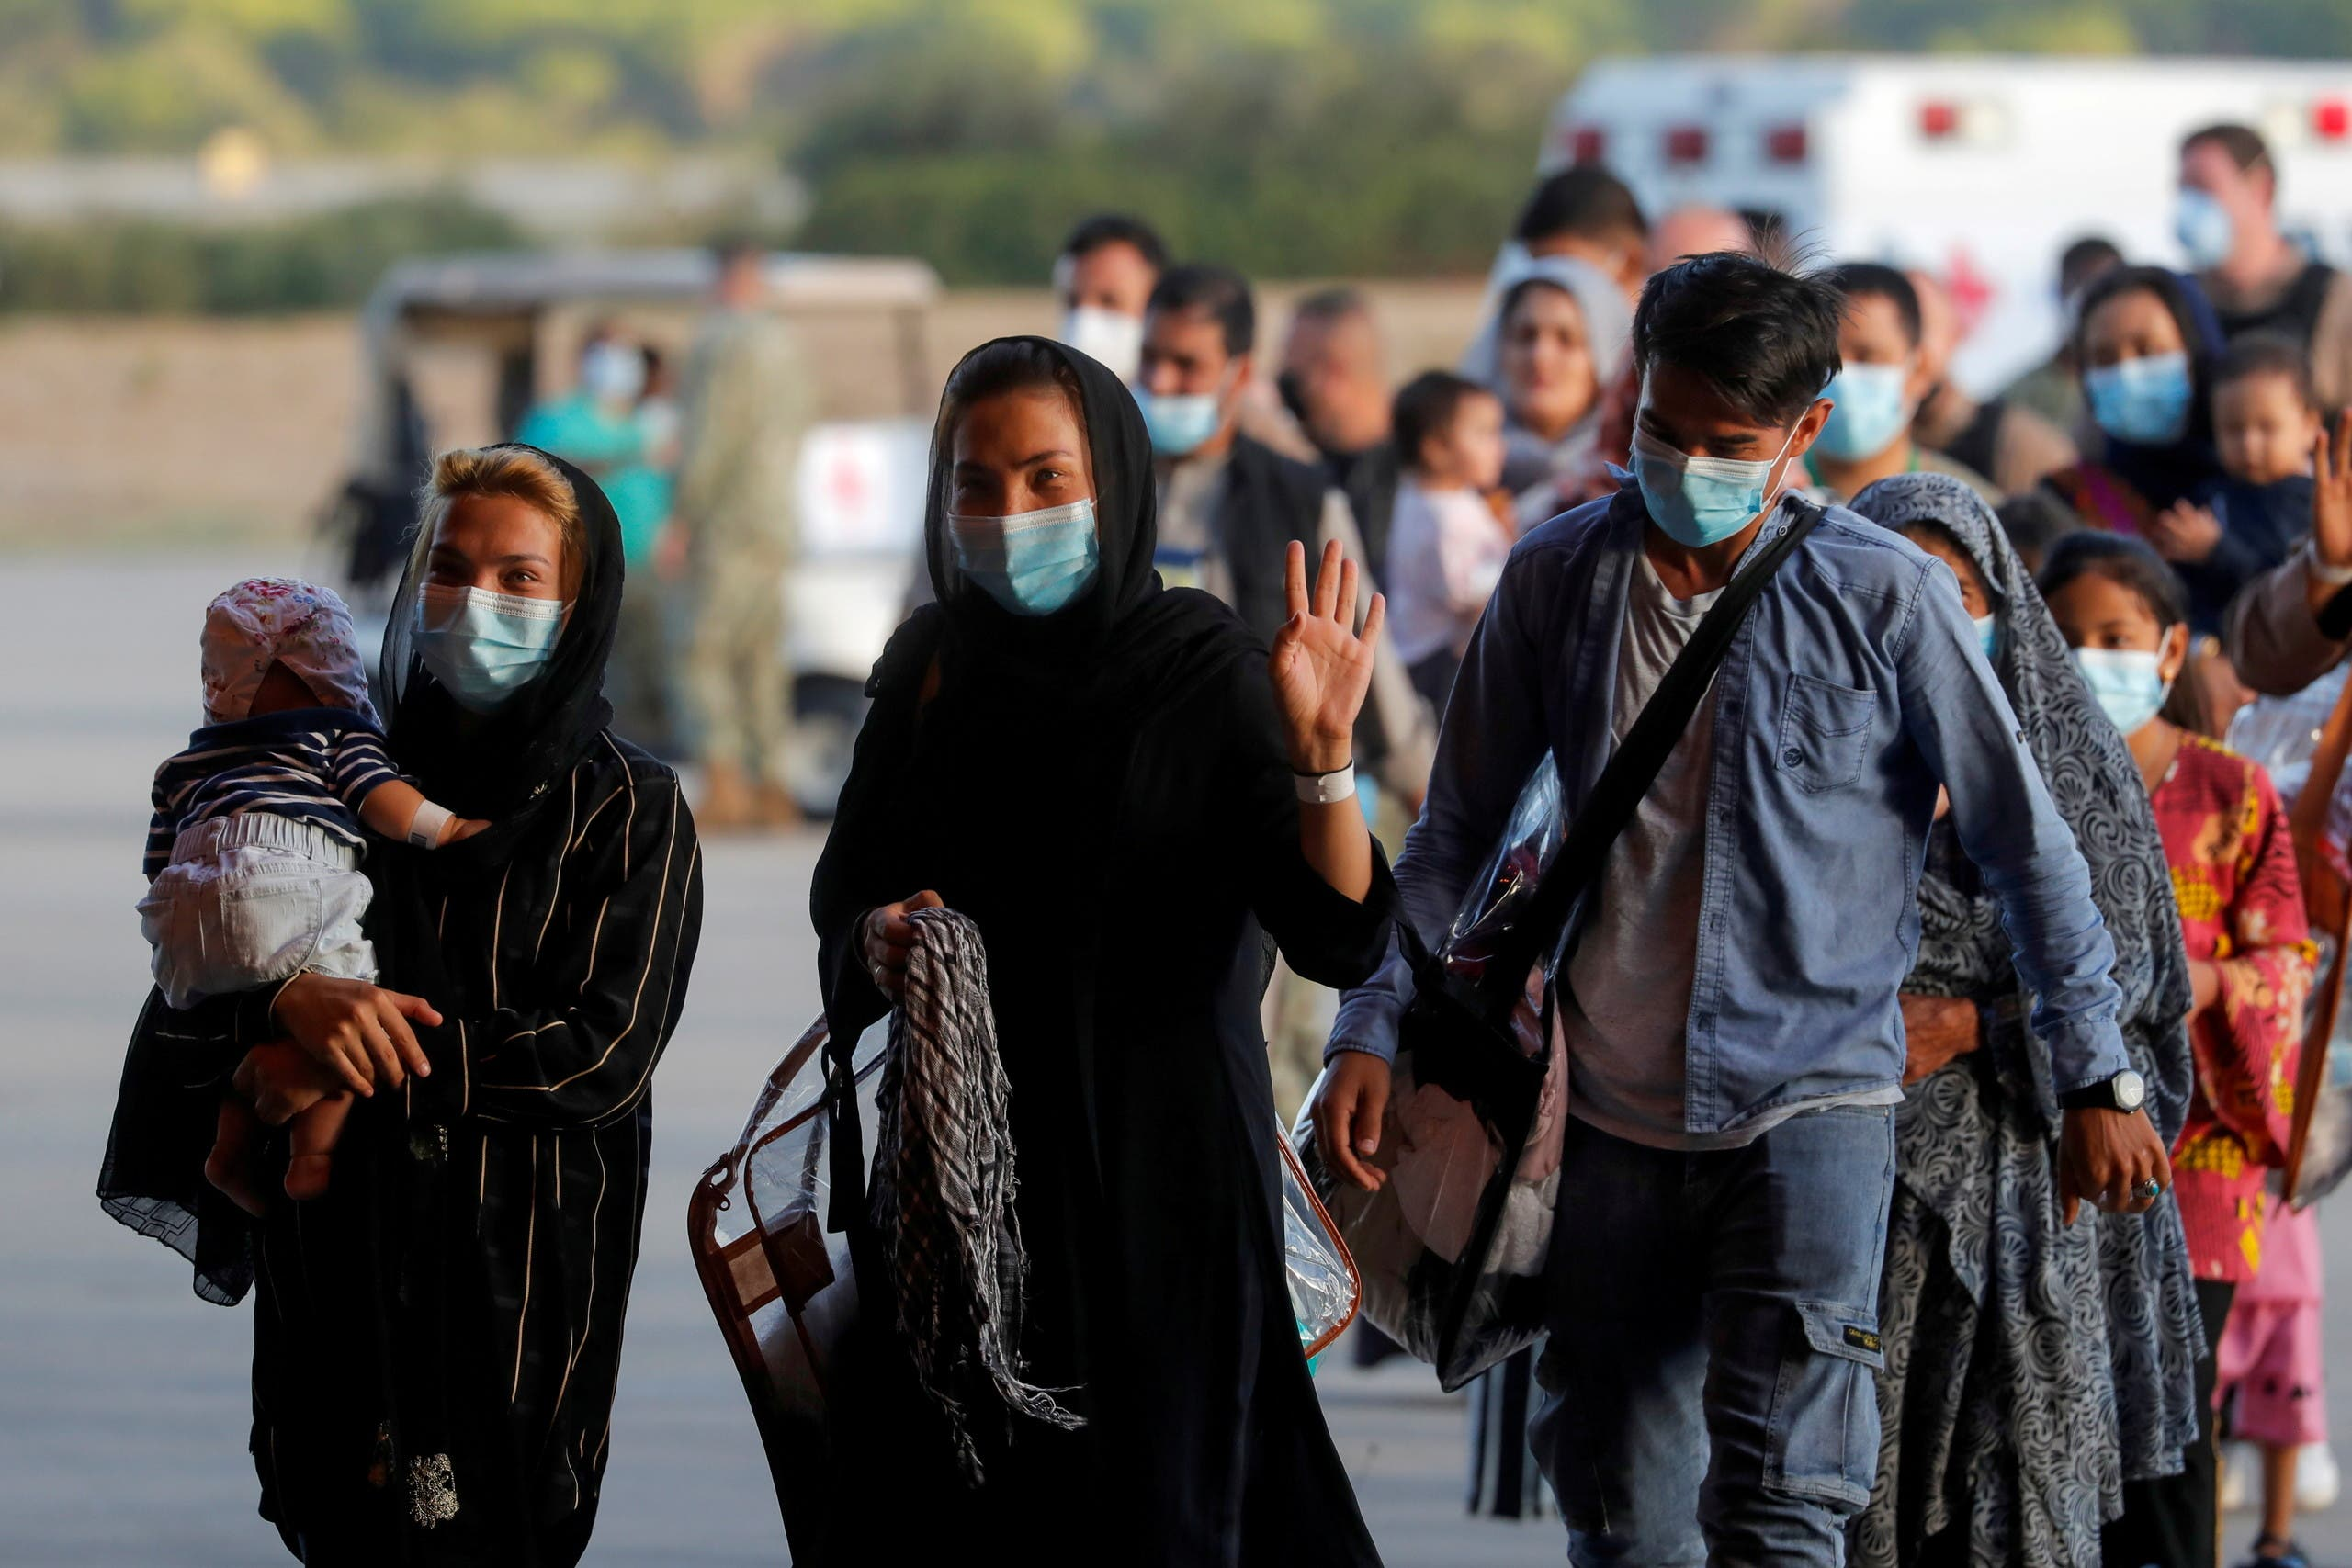 People, who have been evacuated from Kabul, arrive at Naval Station (NAVSTA) Rota Air Base in Rota, southern Spain, August 31, 2021. (File photo: Reuters)